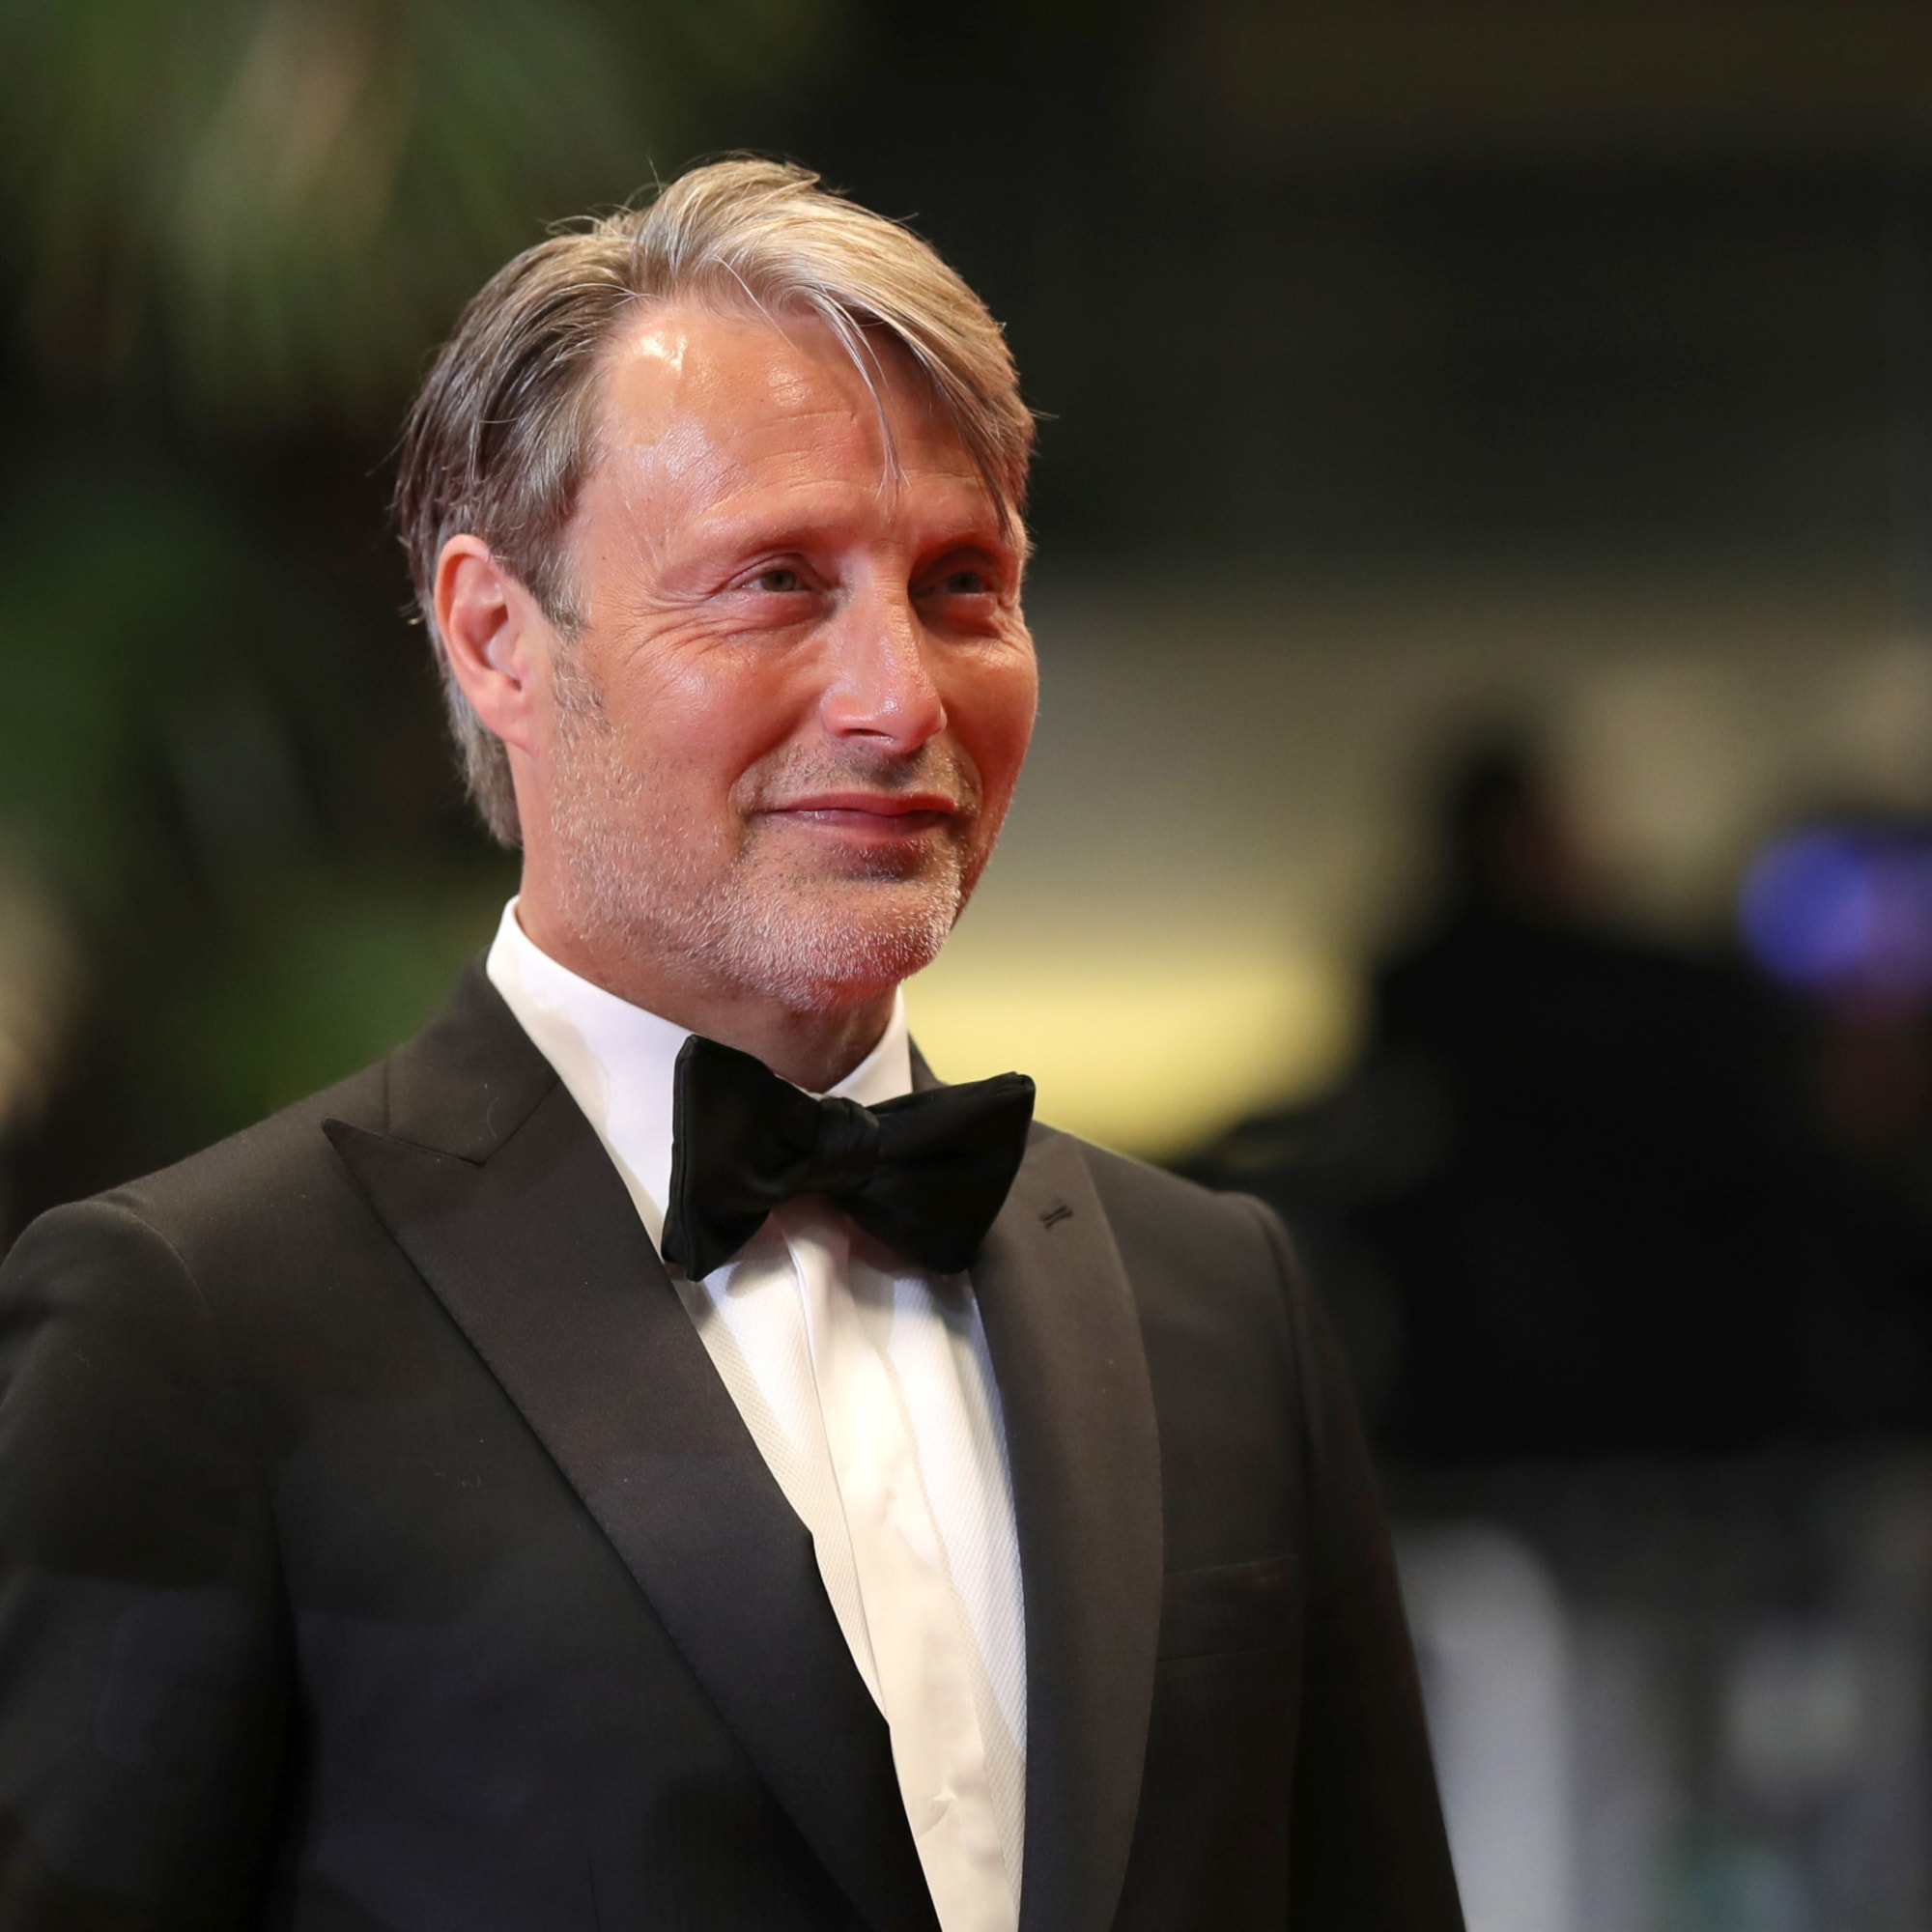 """Mads Mikkelsen: Indiana Jones 5 script is """"everything I wished it to be"""""""